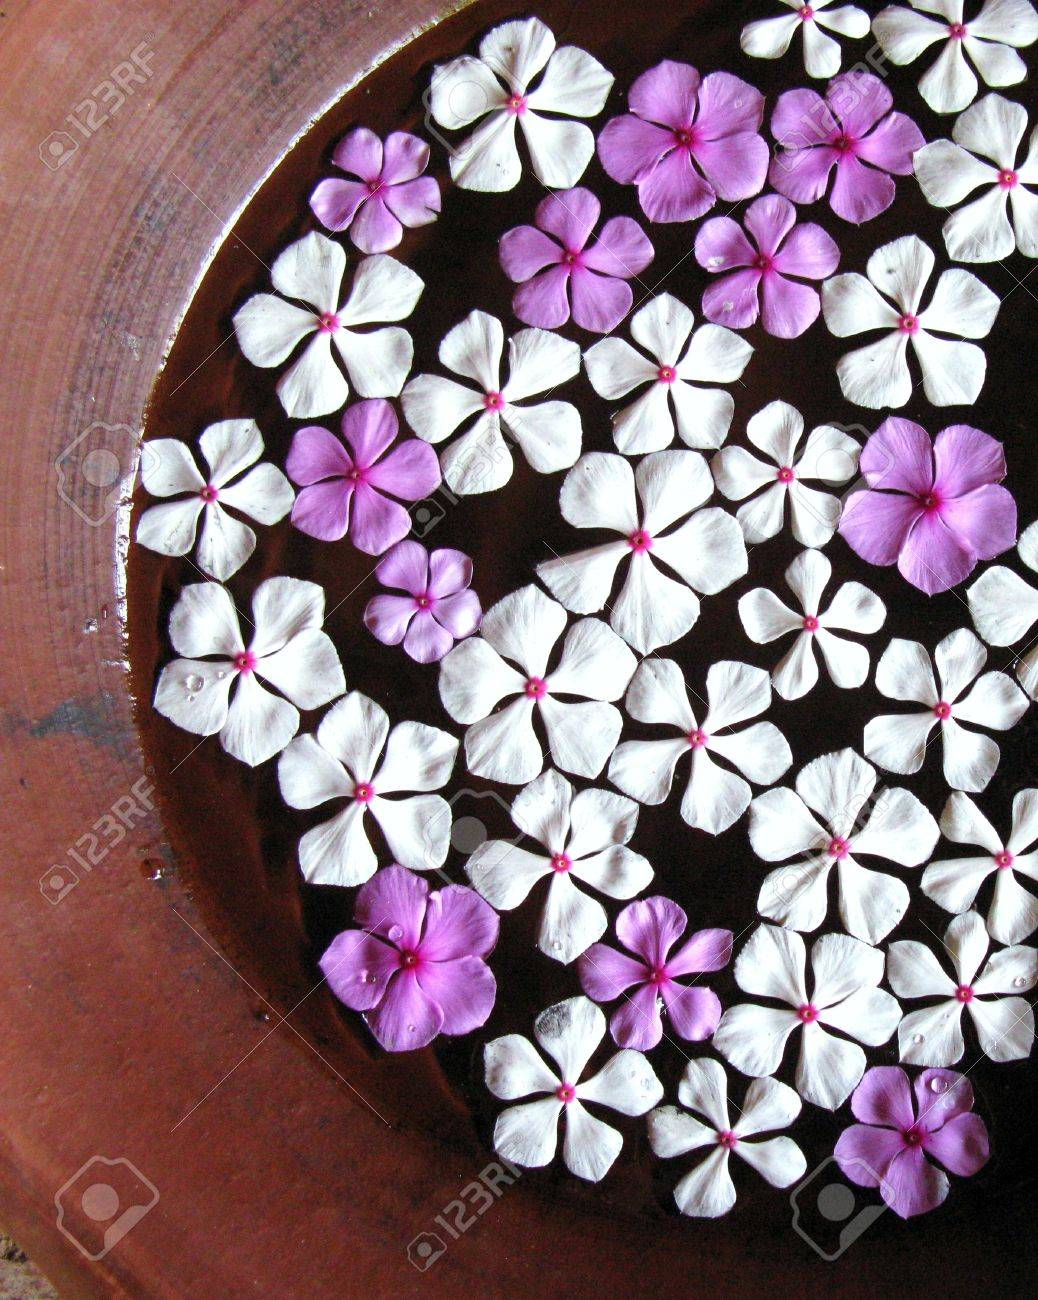 White and pink jasmine flowers floating in a bowl stock photo stock photo white and pink jasmine flowers floating in a bowl izmirmasajfo